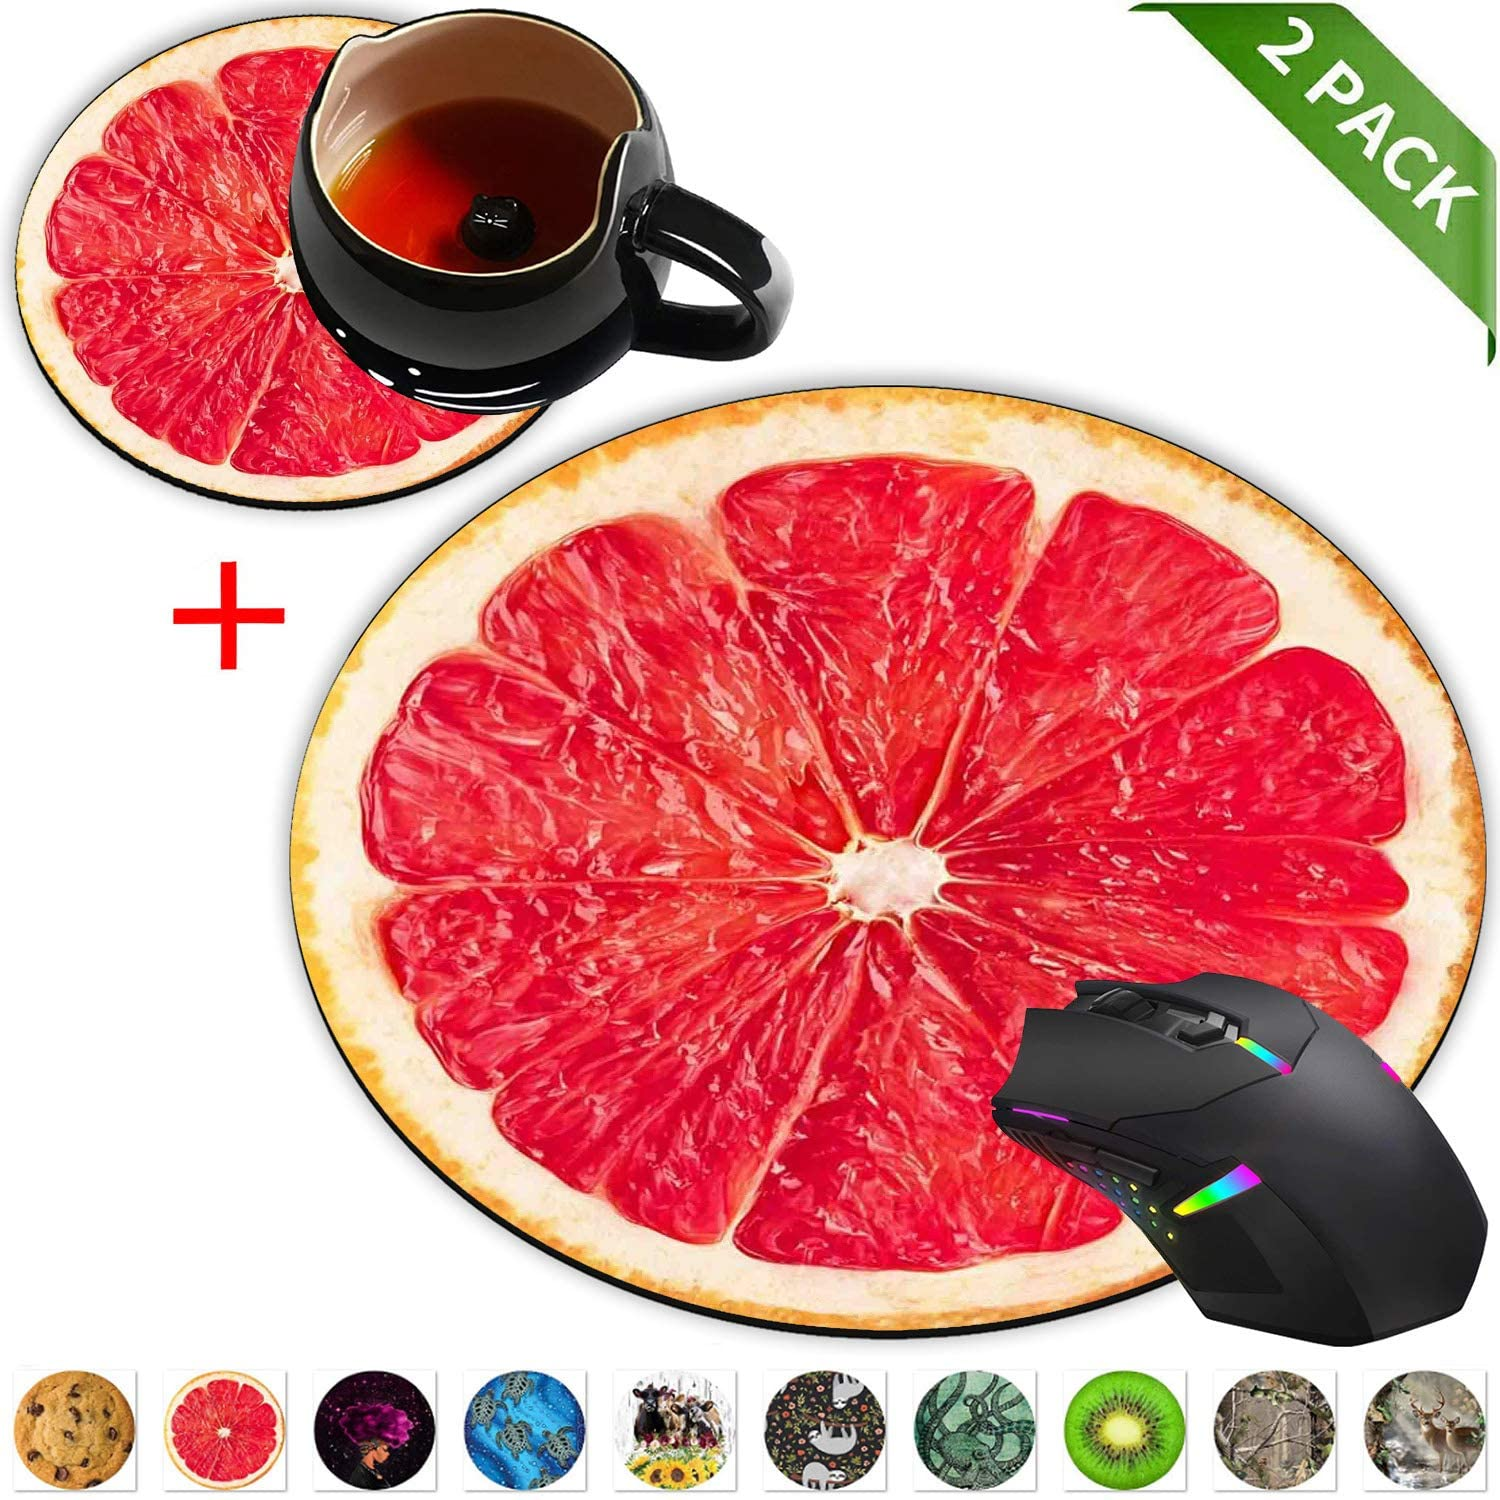 Round Mouse Pad and Coasters Set, Pink ripe Grapefruit Slice Mousepad, Anti Slip Rubber Round Mousepads Desktop Notebook Mouse Mat for Working and Gaming